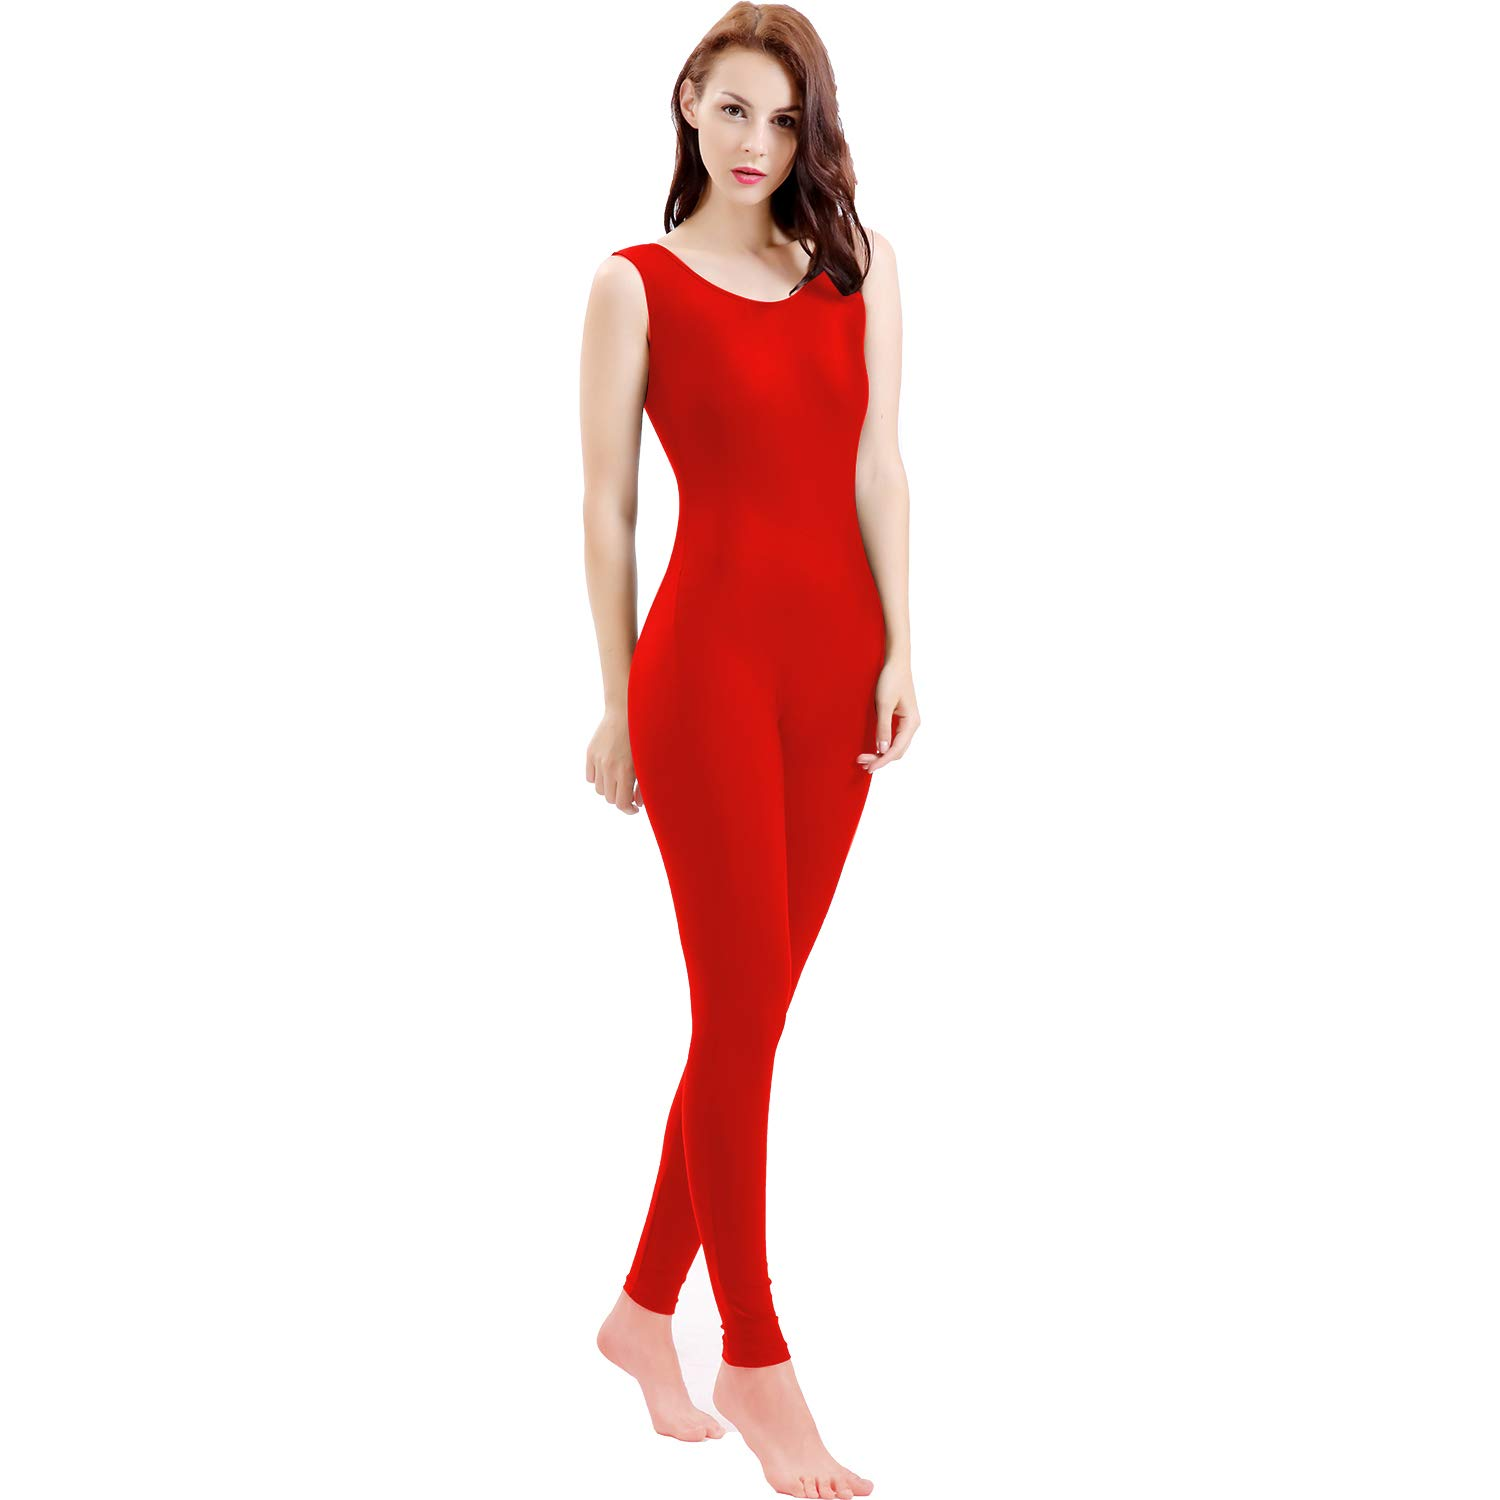 Gaibest Women Lycra Spandex Sleeveless Tank Dance Unitard Bodysuit red by GAIBEST